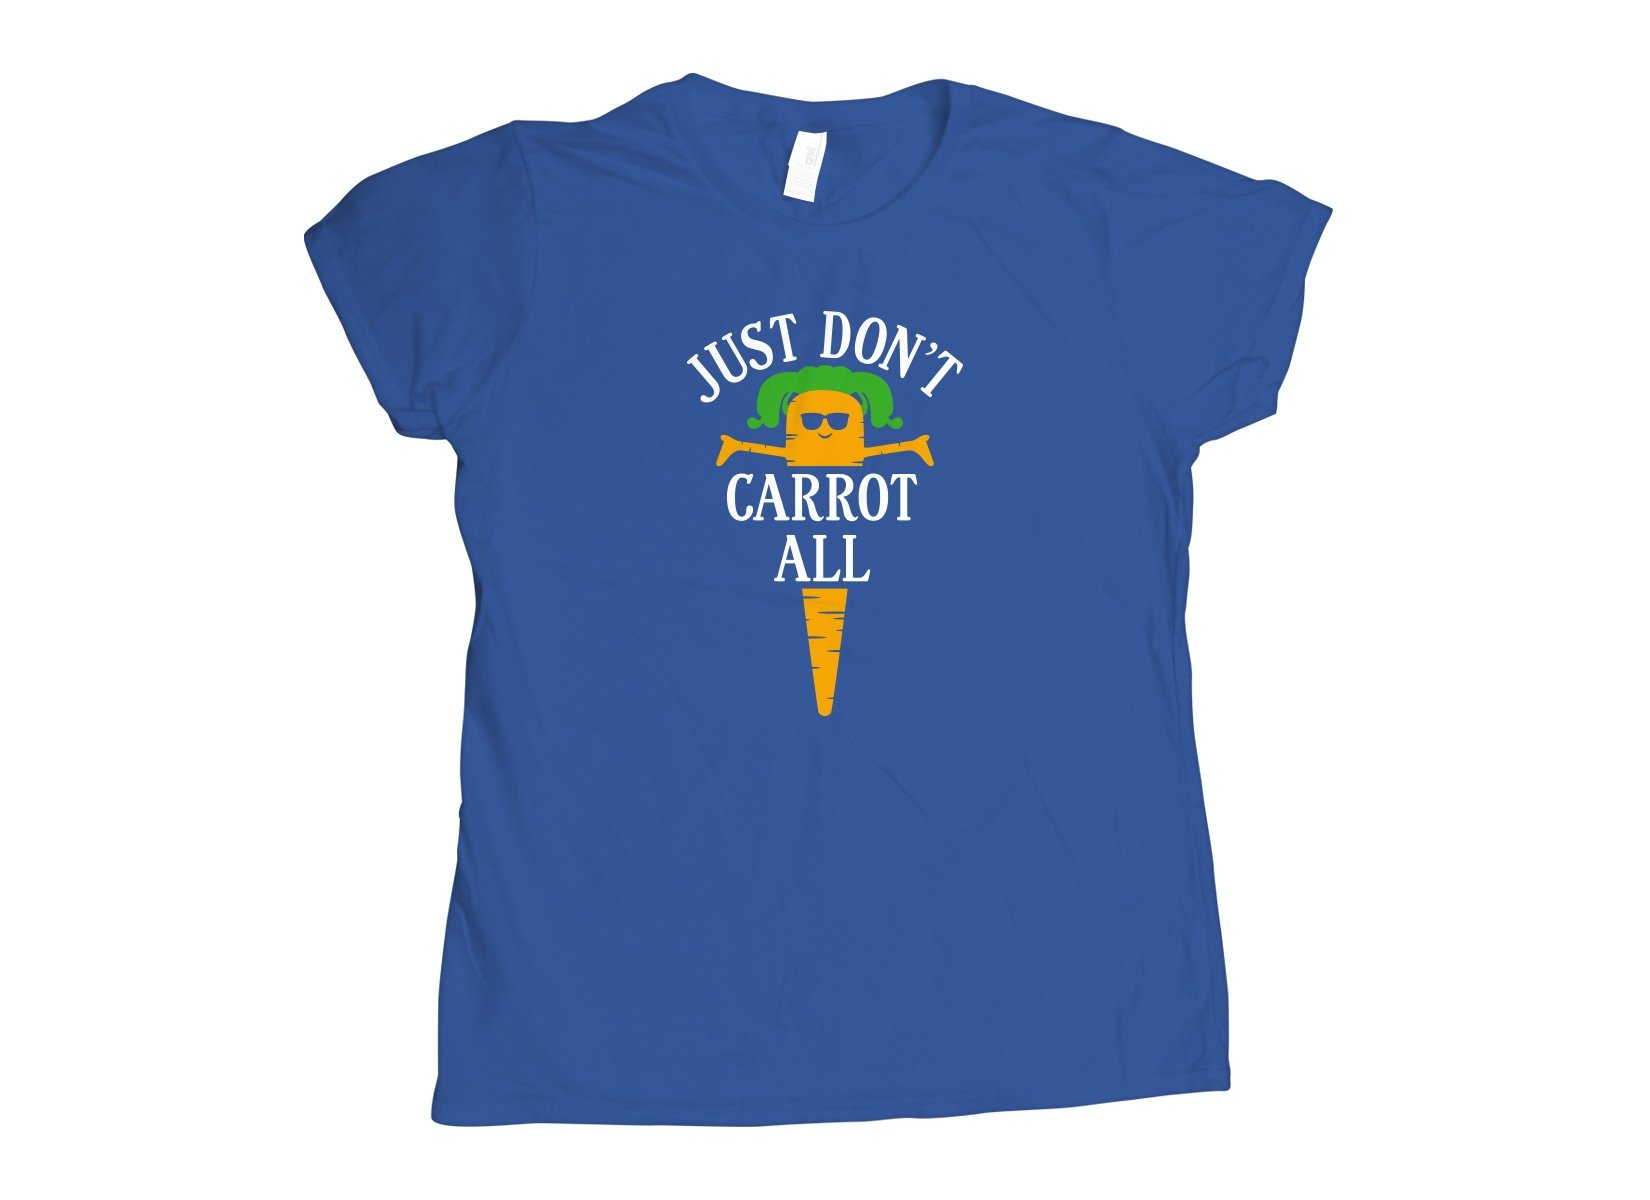 Just Don't Carrot All on Womens T-Shirt